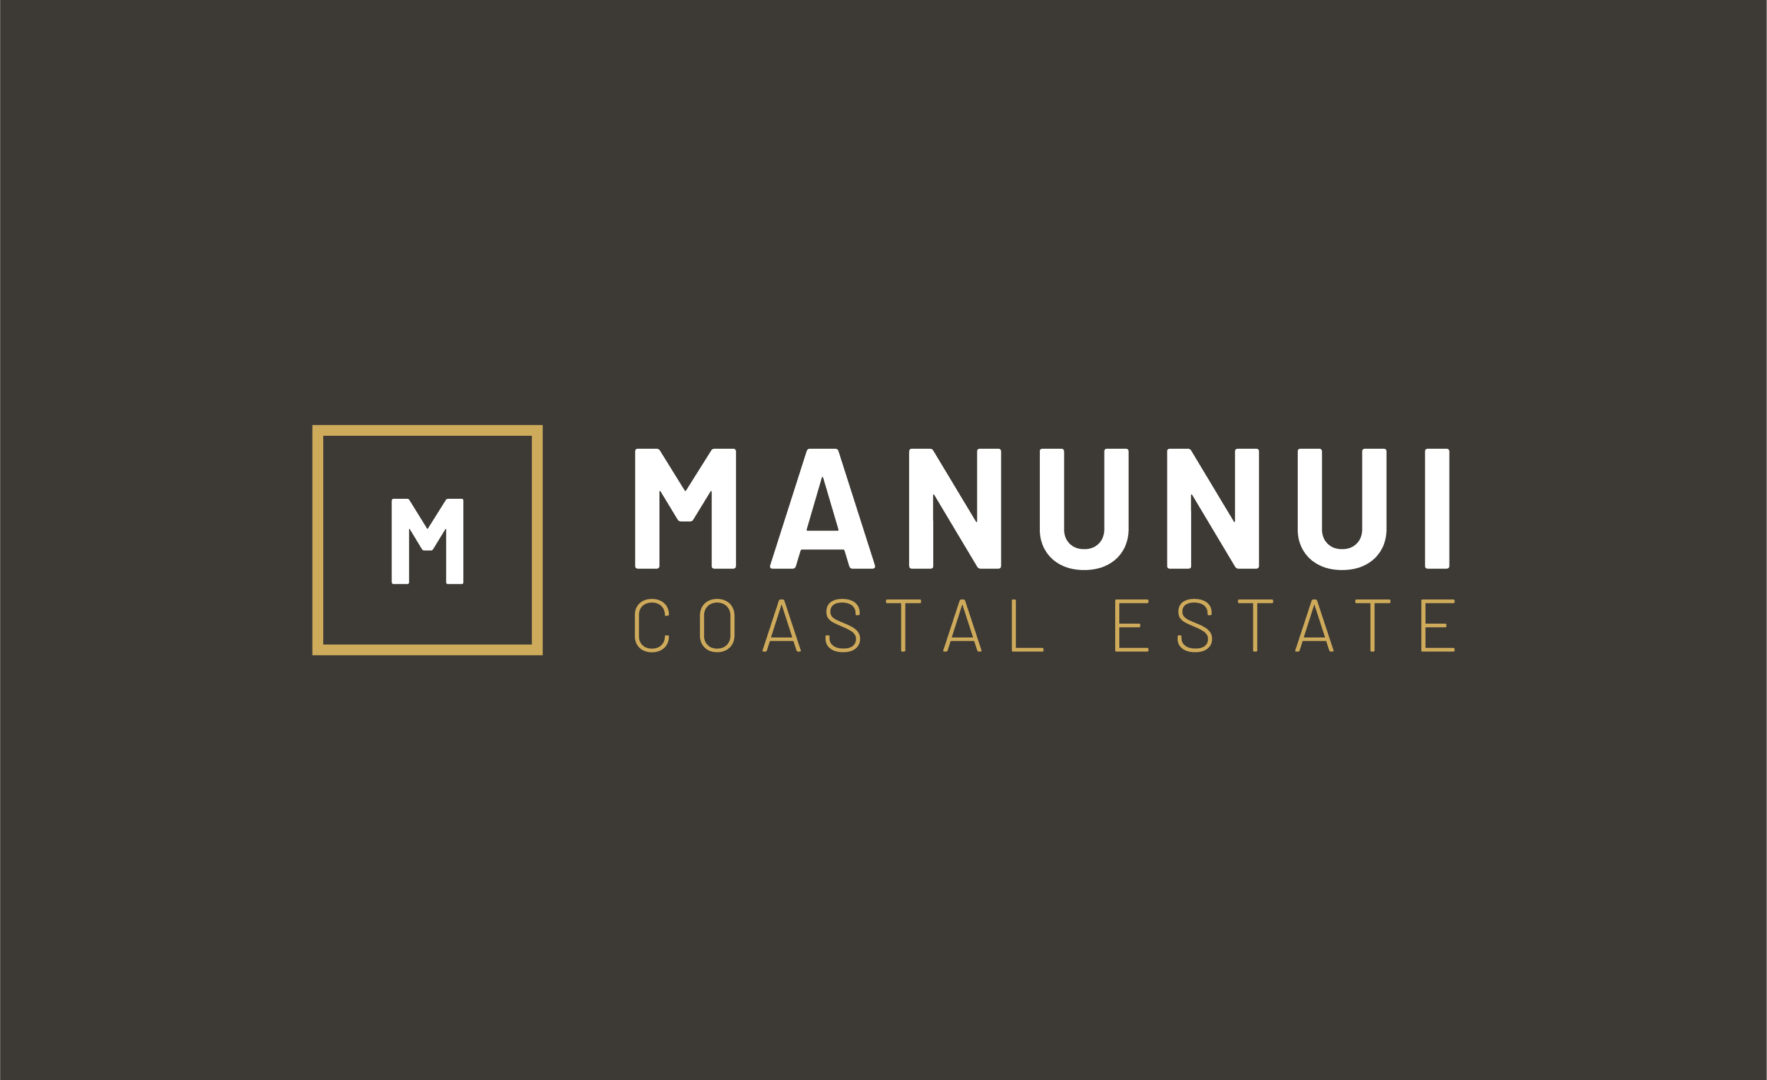 Manunui Coastal Estate logo